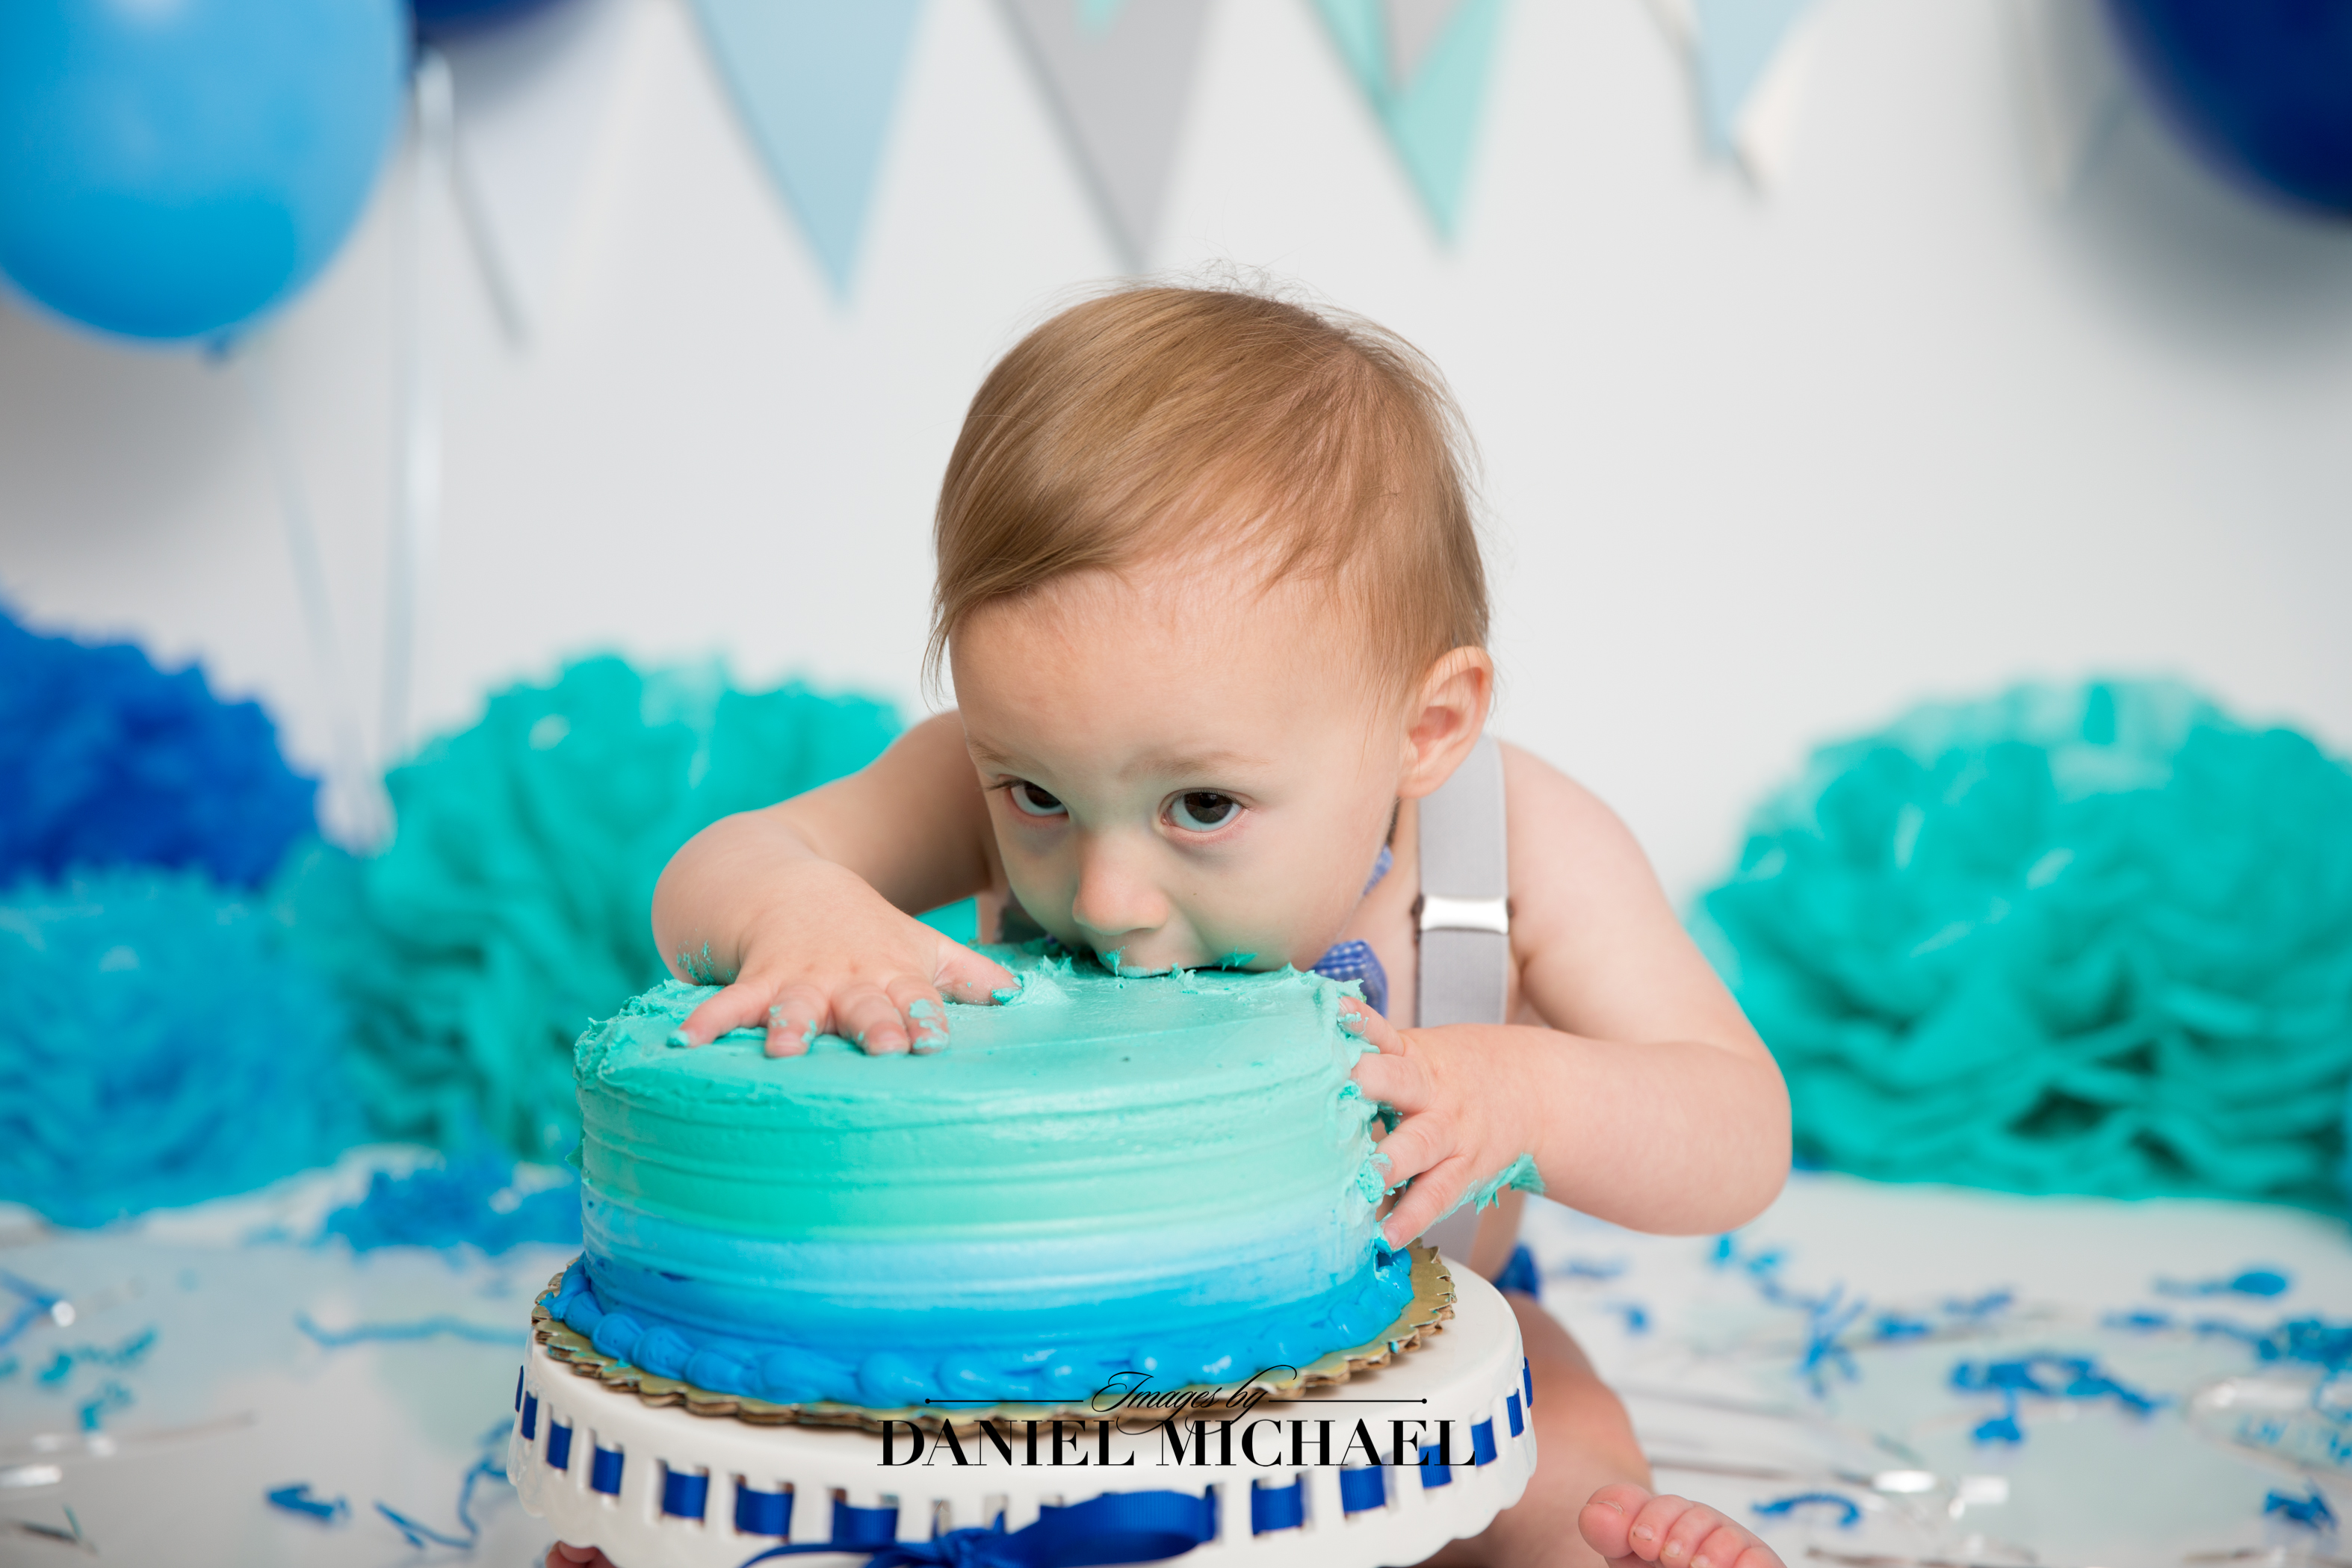 Cake Smash Photography, Studio Portraits, Cincinnati Photographers, Jessica Rist